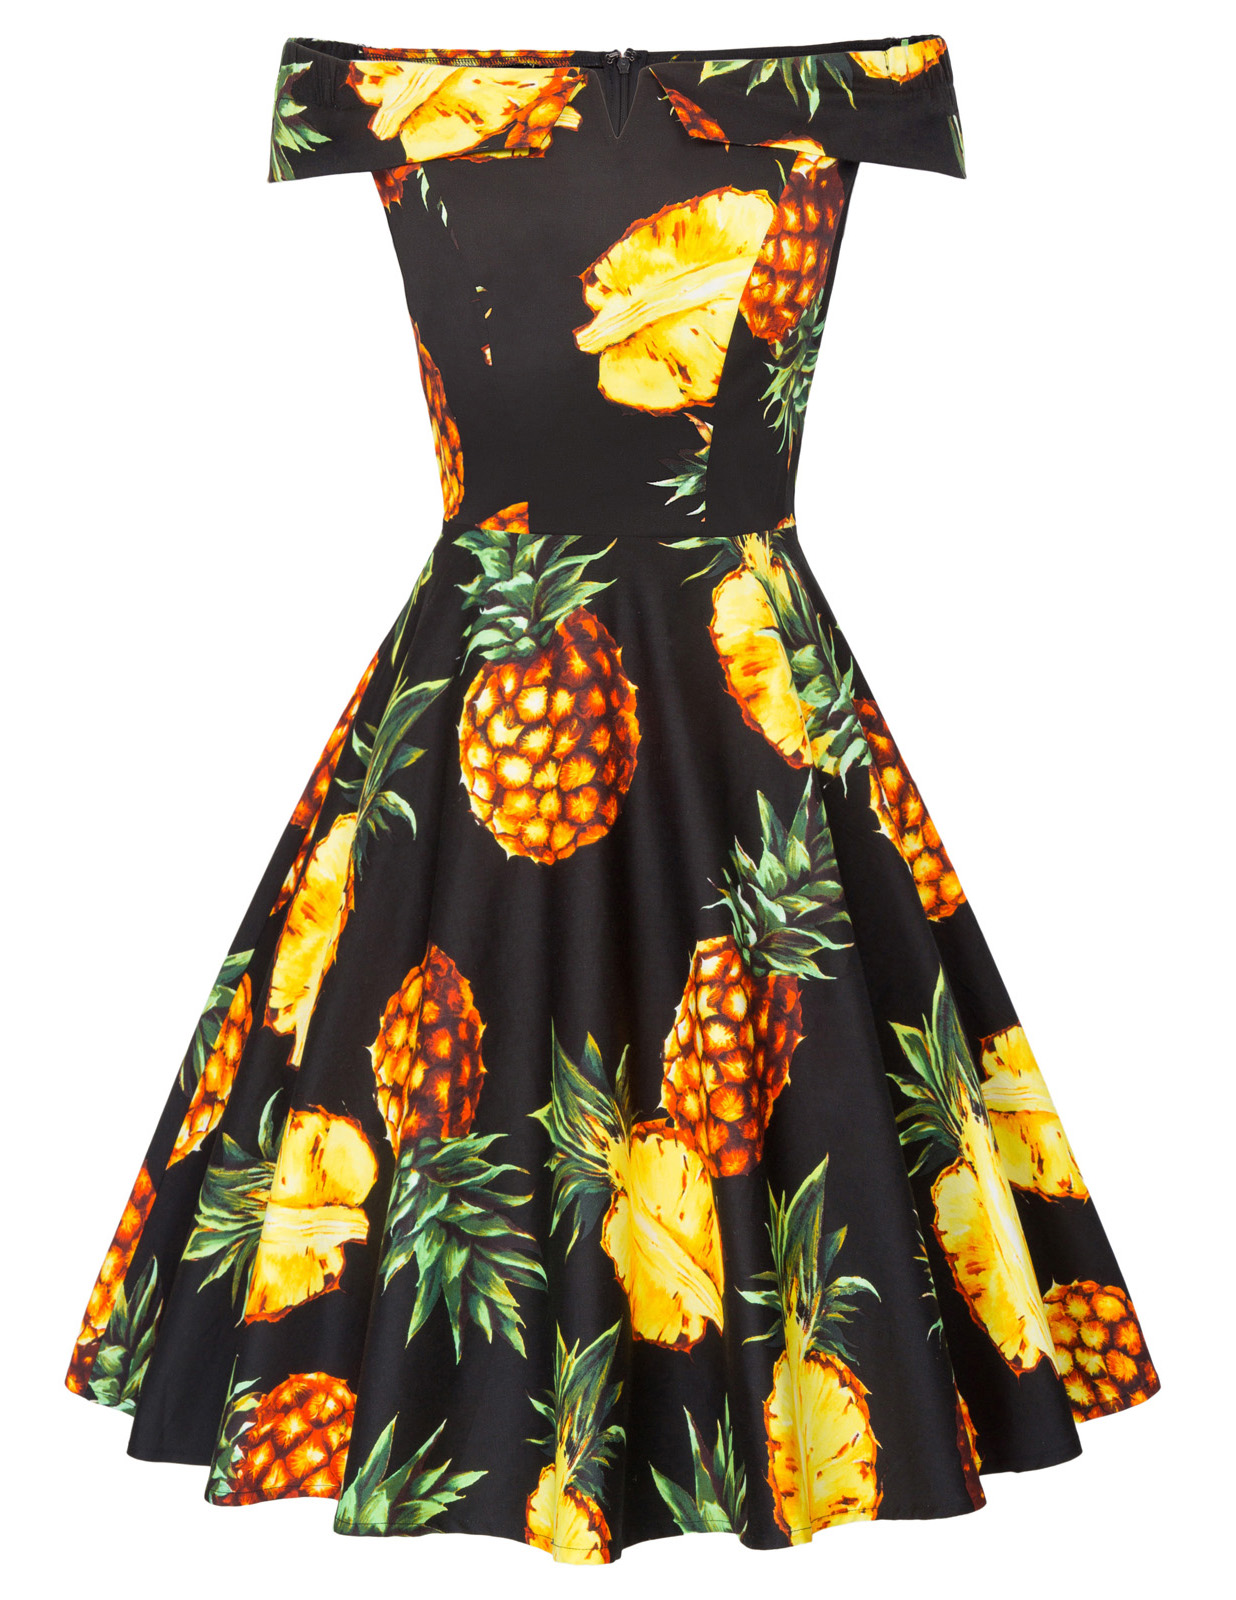 e6b9d8a962 BP Vintage Women Pineapple Pattern dresses summer tropical clothing sexy  Off Shoulder Cotton party knee length